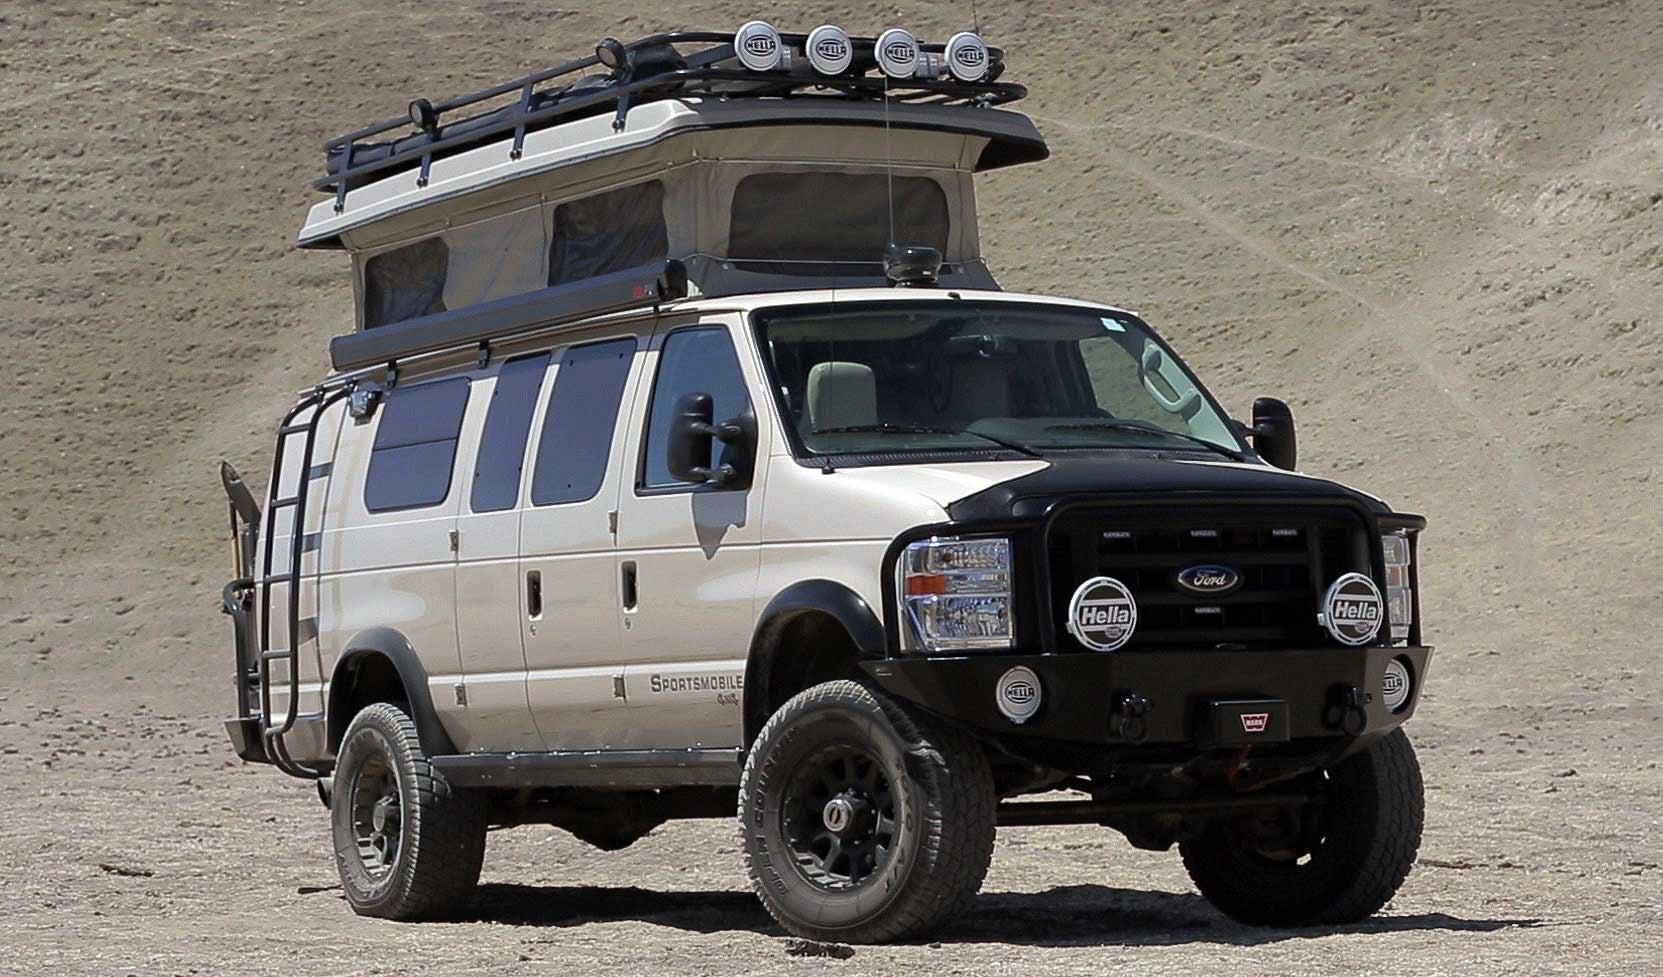 4×4 Off Road >> The Sportsmobile 4x4 Ford Van Is The RV Motorhome For Off Roading